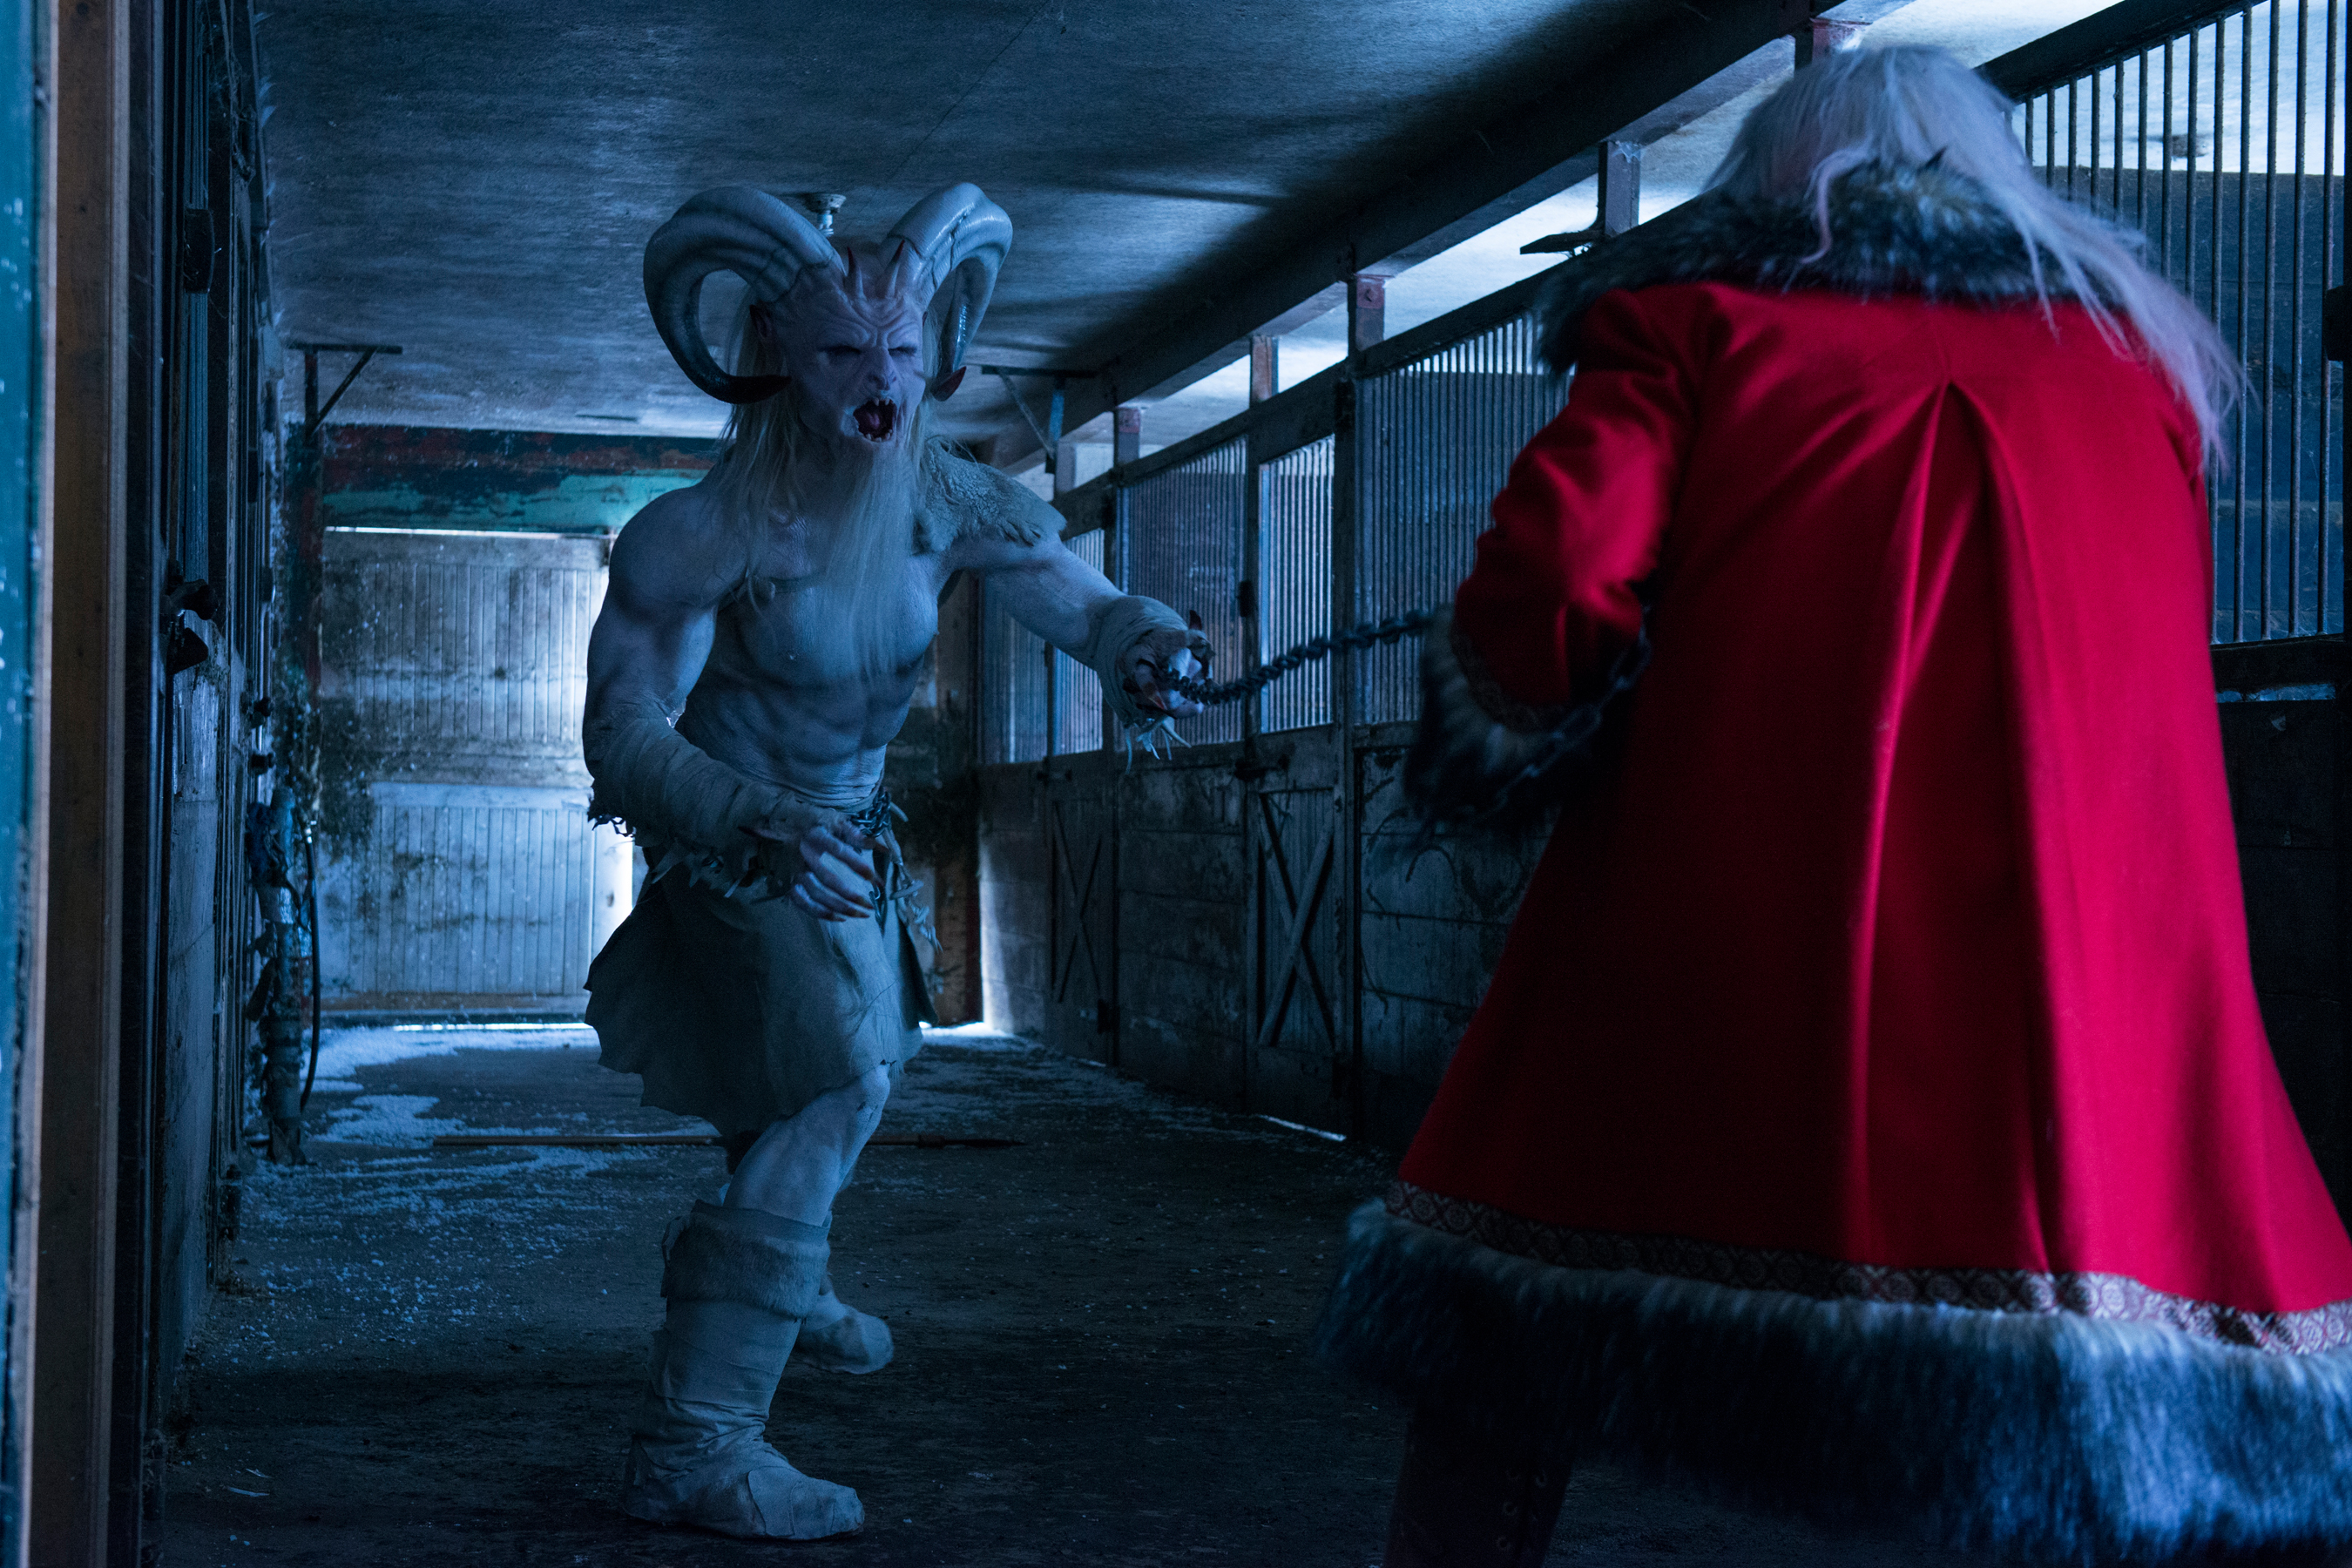 Last Year's Awesome Anthology 'A Christmas Horror Story' Just Hit Netflix!